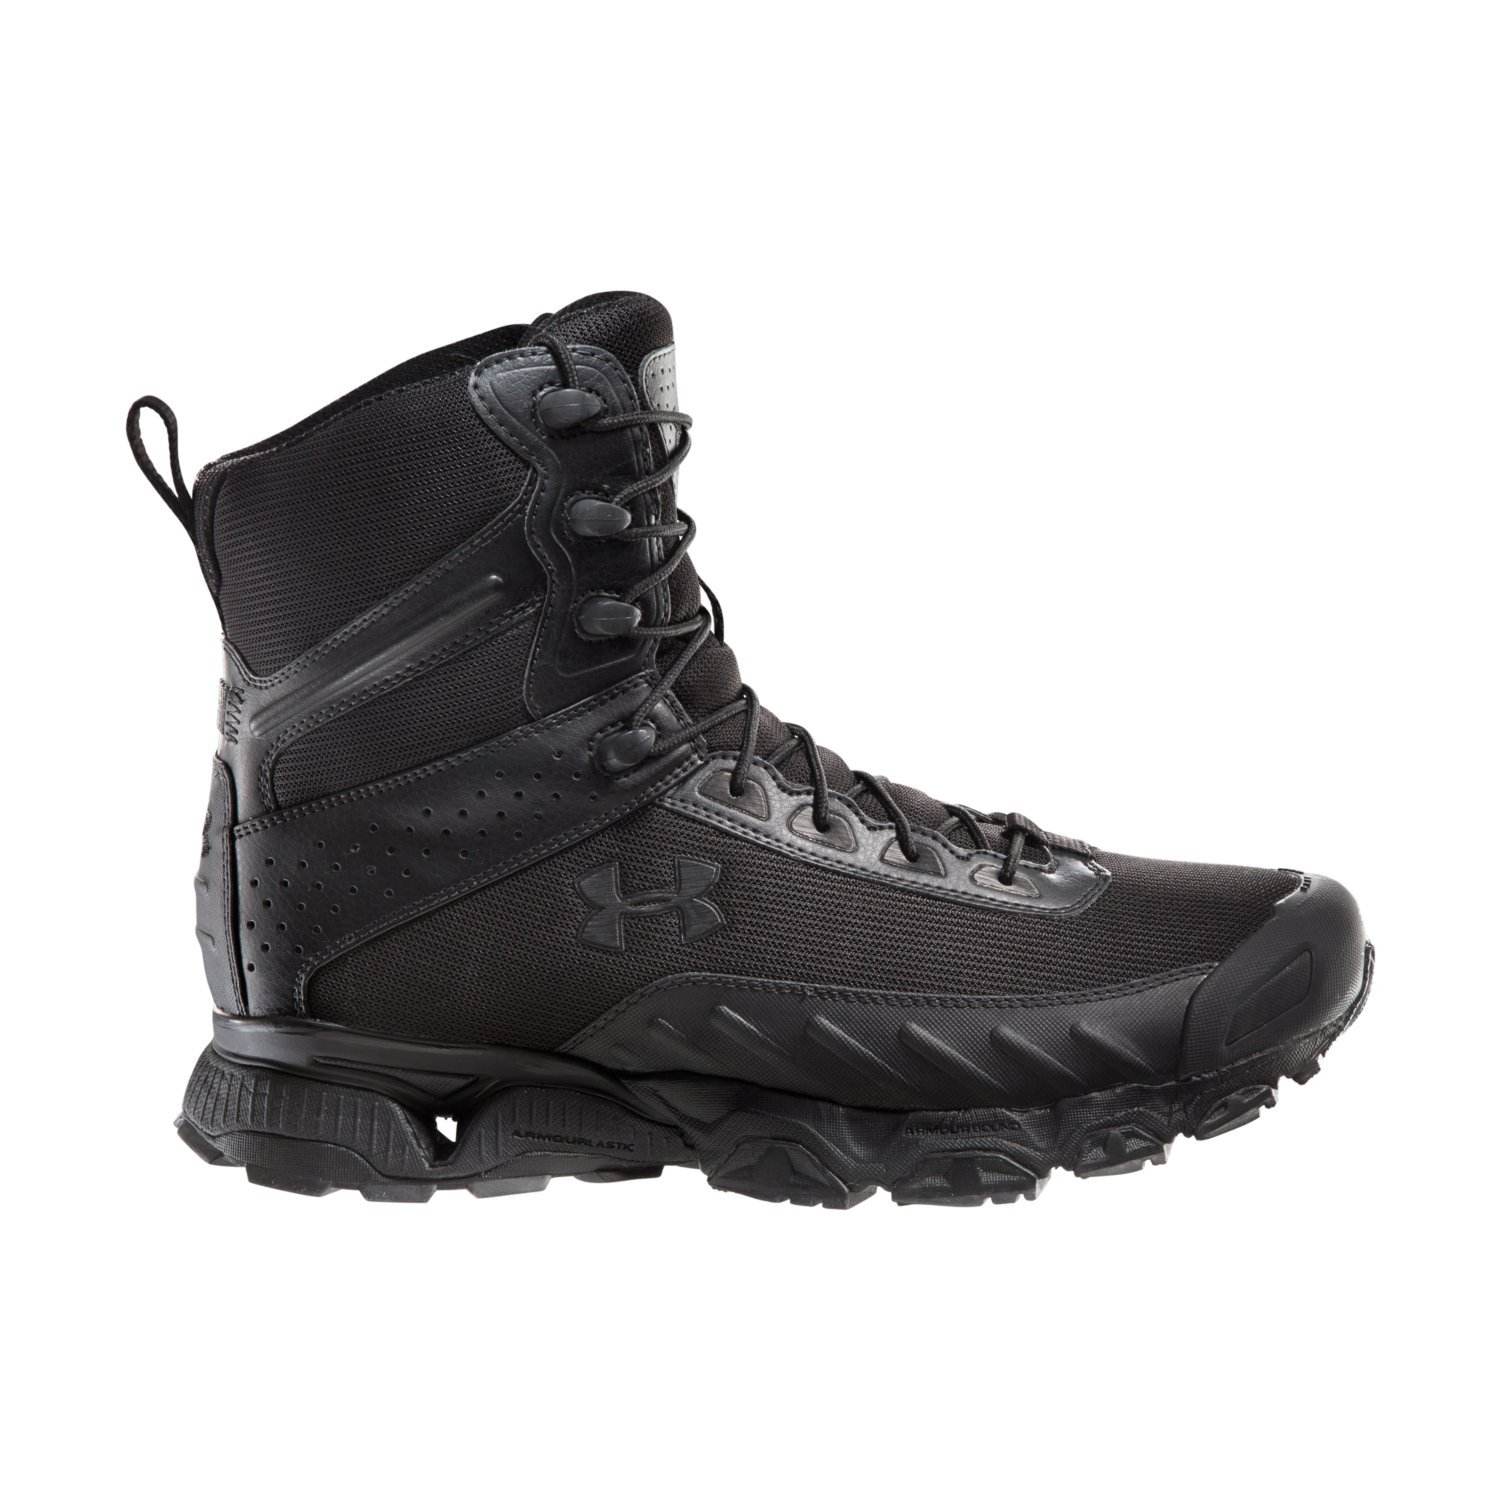 Men's UA Valsetz Tactical Hiking Boots by Under Armour